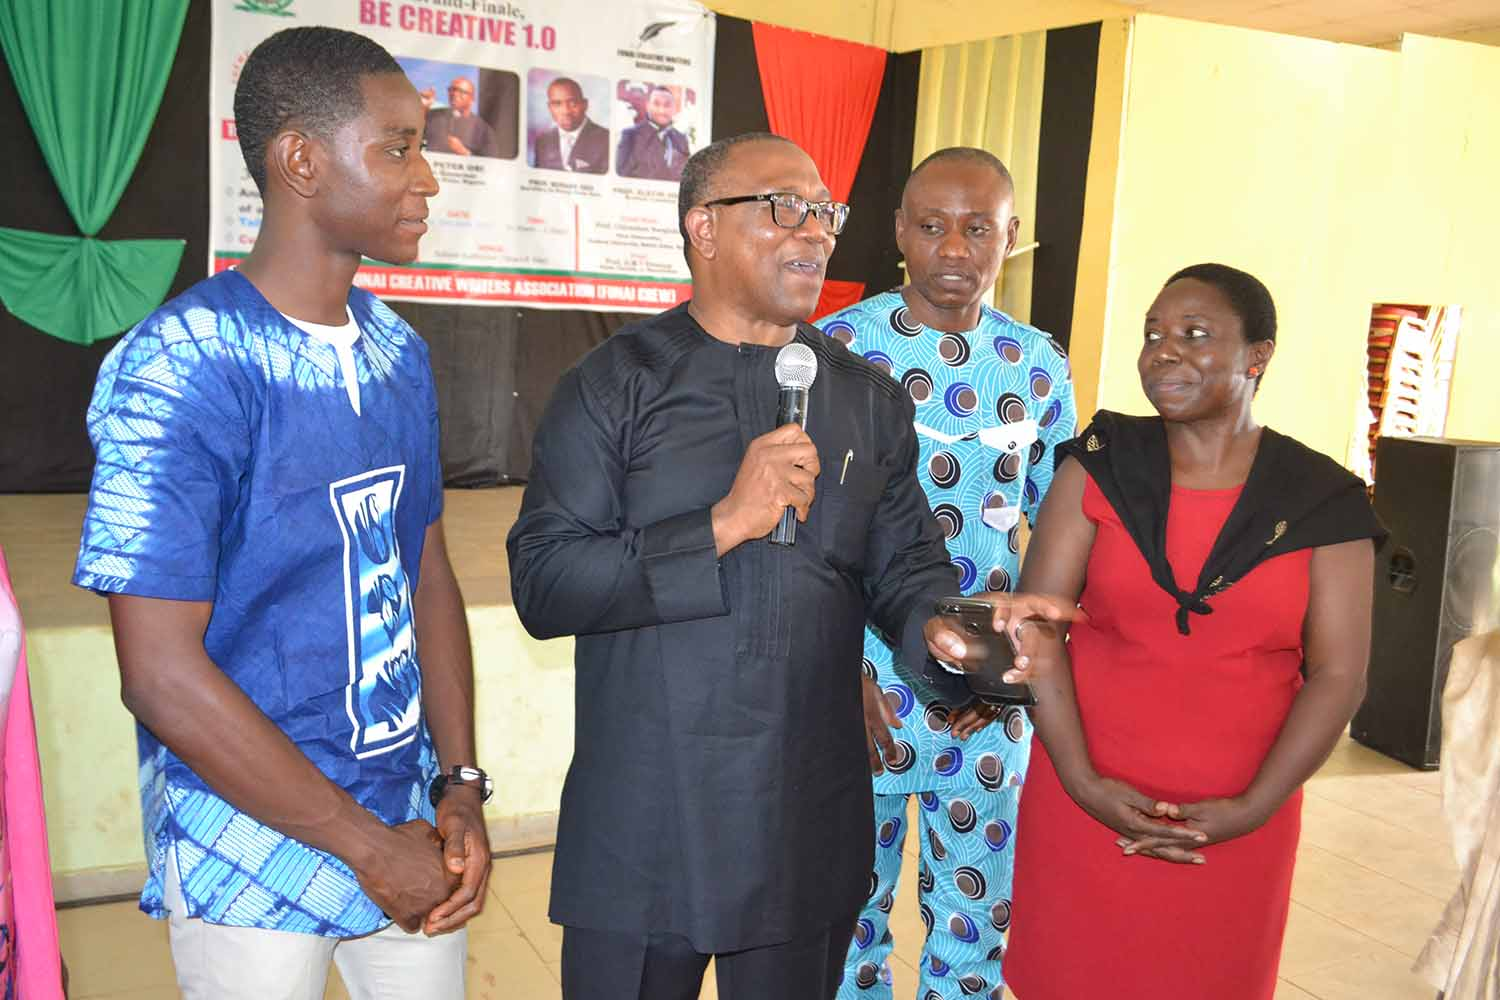 Left to Right: Mr Uche Agbo (President of AE-FUNAI CREW), Mr Peter Obi (Special Guest of Honour), Mr Iyke Ubochi (University PRO), Prof G.M.T Emezue (Matron of the Association)